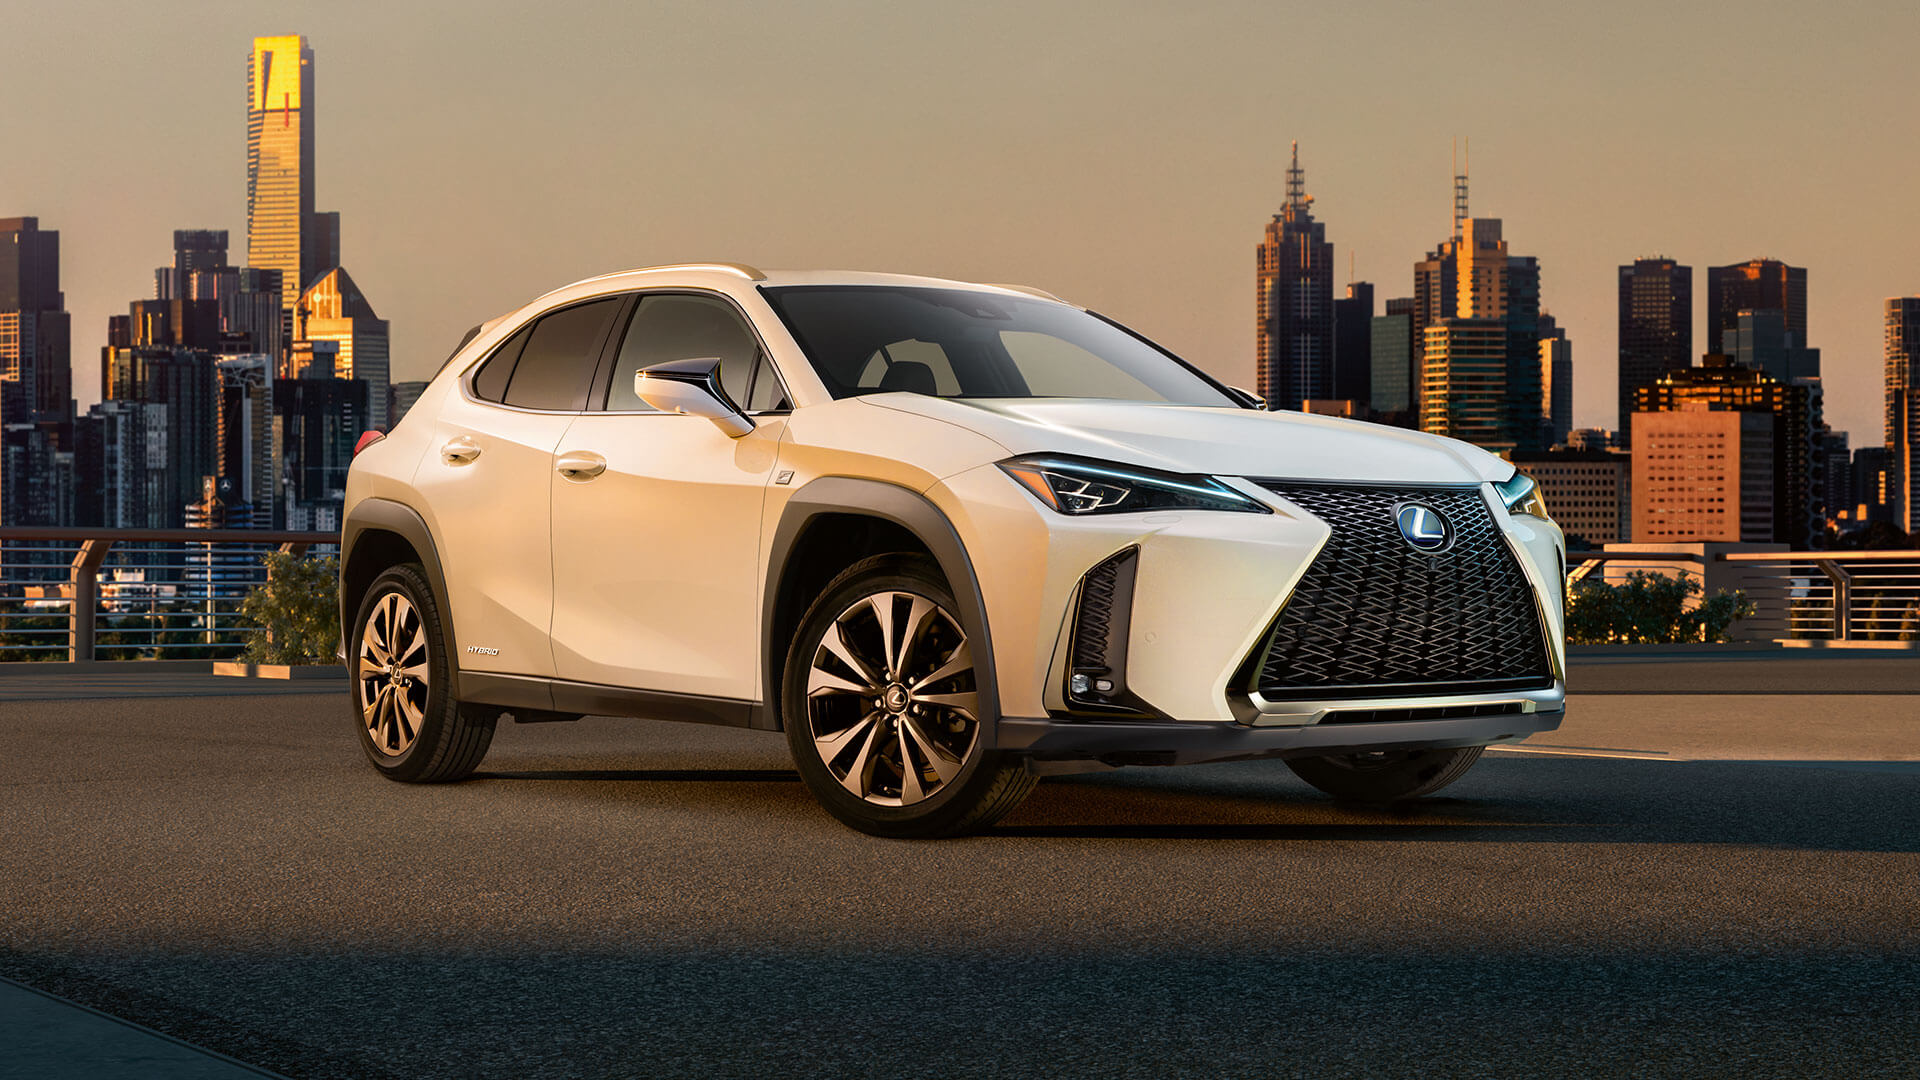 2019 lexus ux hybrid f sport cinemagraph cover